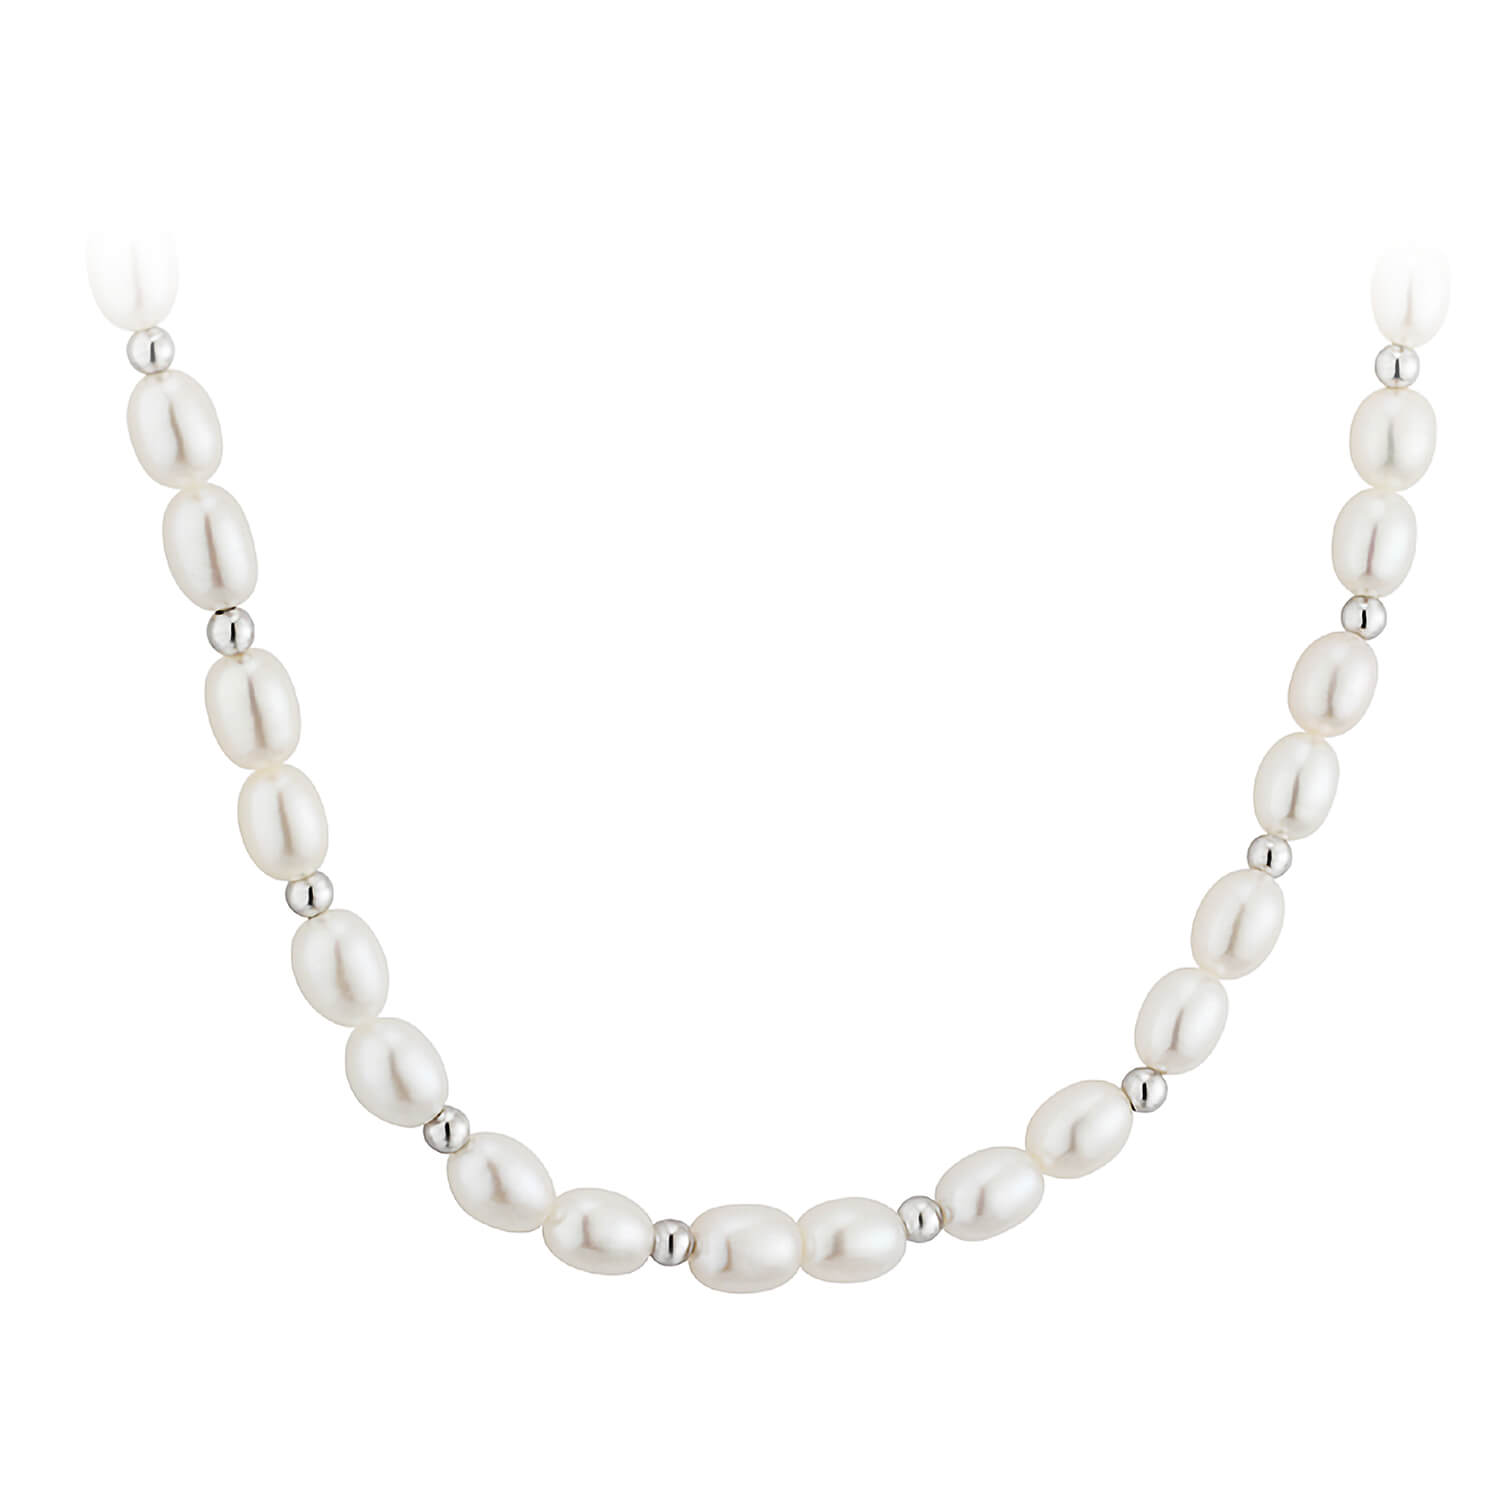 9ct White Gold Freshwater Pearl Necklet